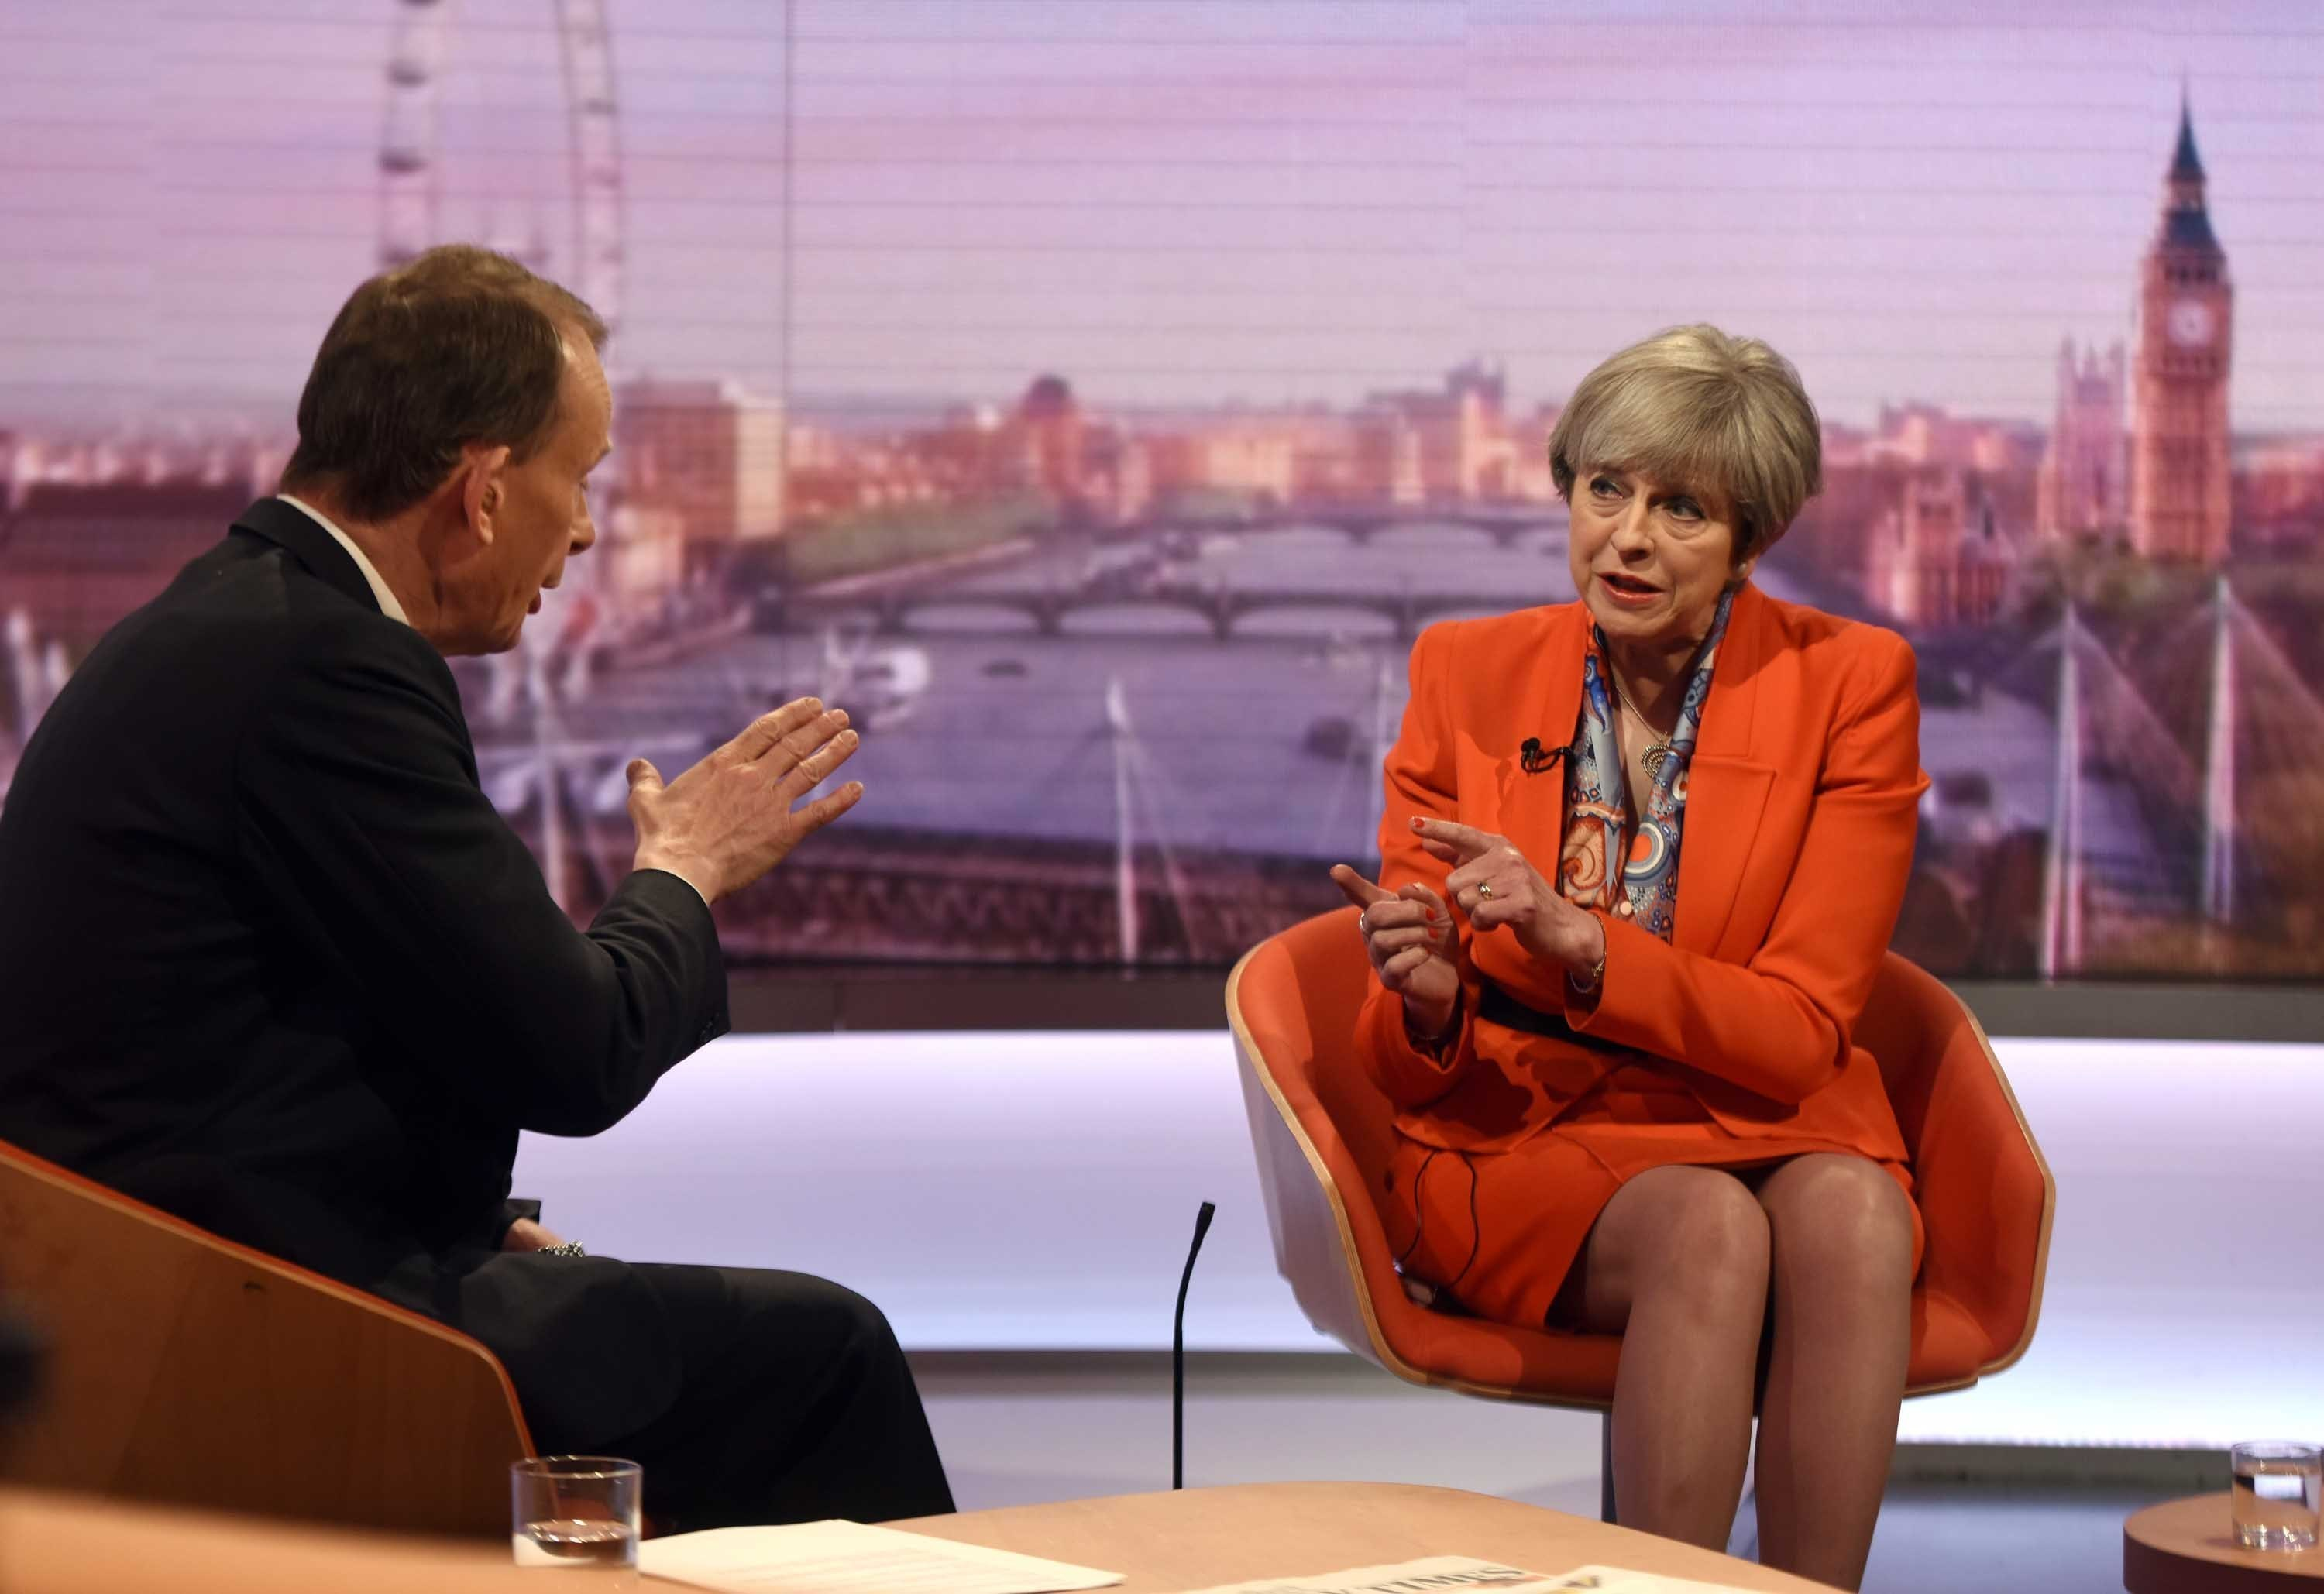 Andrew Marr and Prime Minister Theresa May appearing on the BBC One current affairs programme, The Andrew Marr Show.